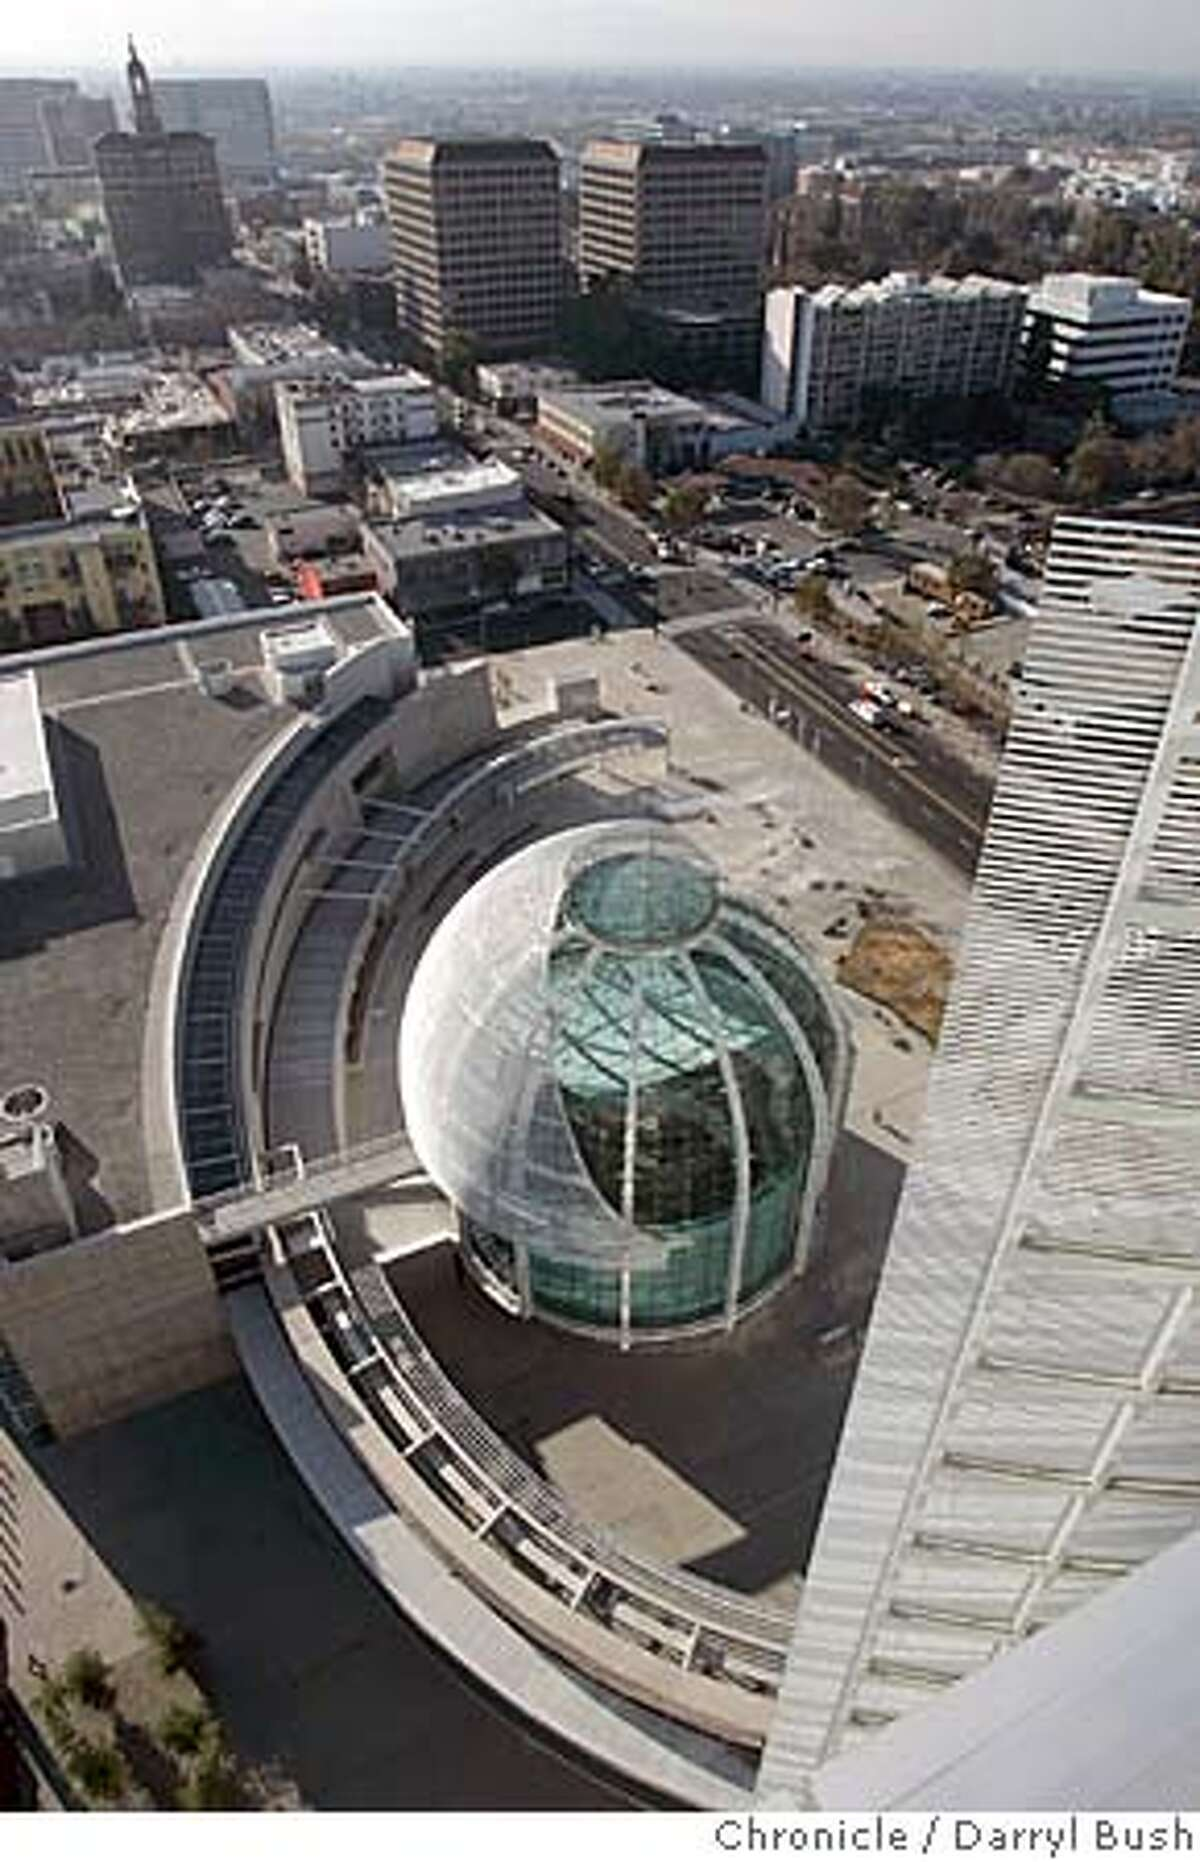 sanjosehall_0018_db.jpg View of the glass-domed rotunda from the top of the office tower showing the brise soleil (right) which shields the tower's west side from sun at the new downtown San Jose City Hall. Event on 11/23/05 in San Jose. Darryl Bush / The Chronicle MANDATORY CREDIT FOR PHOTOG AND SF CHRONICLE/ -MAGS OUT